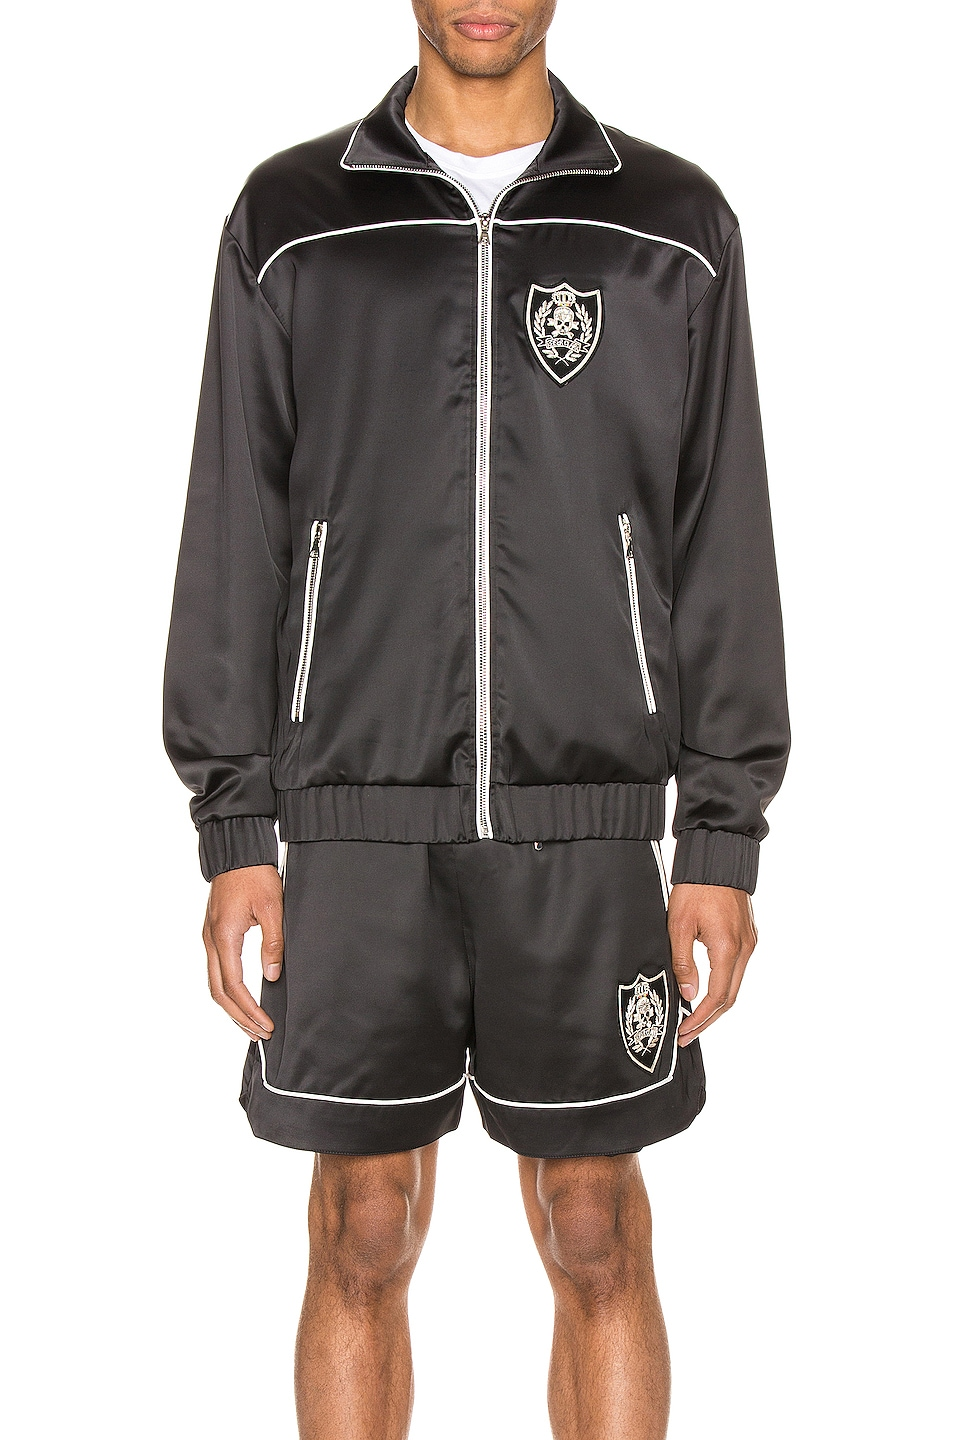 Image 2 of Keiser Clark The Academy Tracksuit Jacket in Black & White